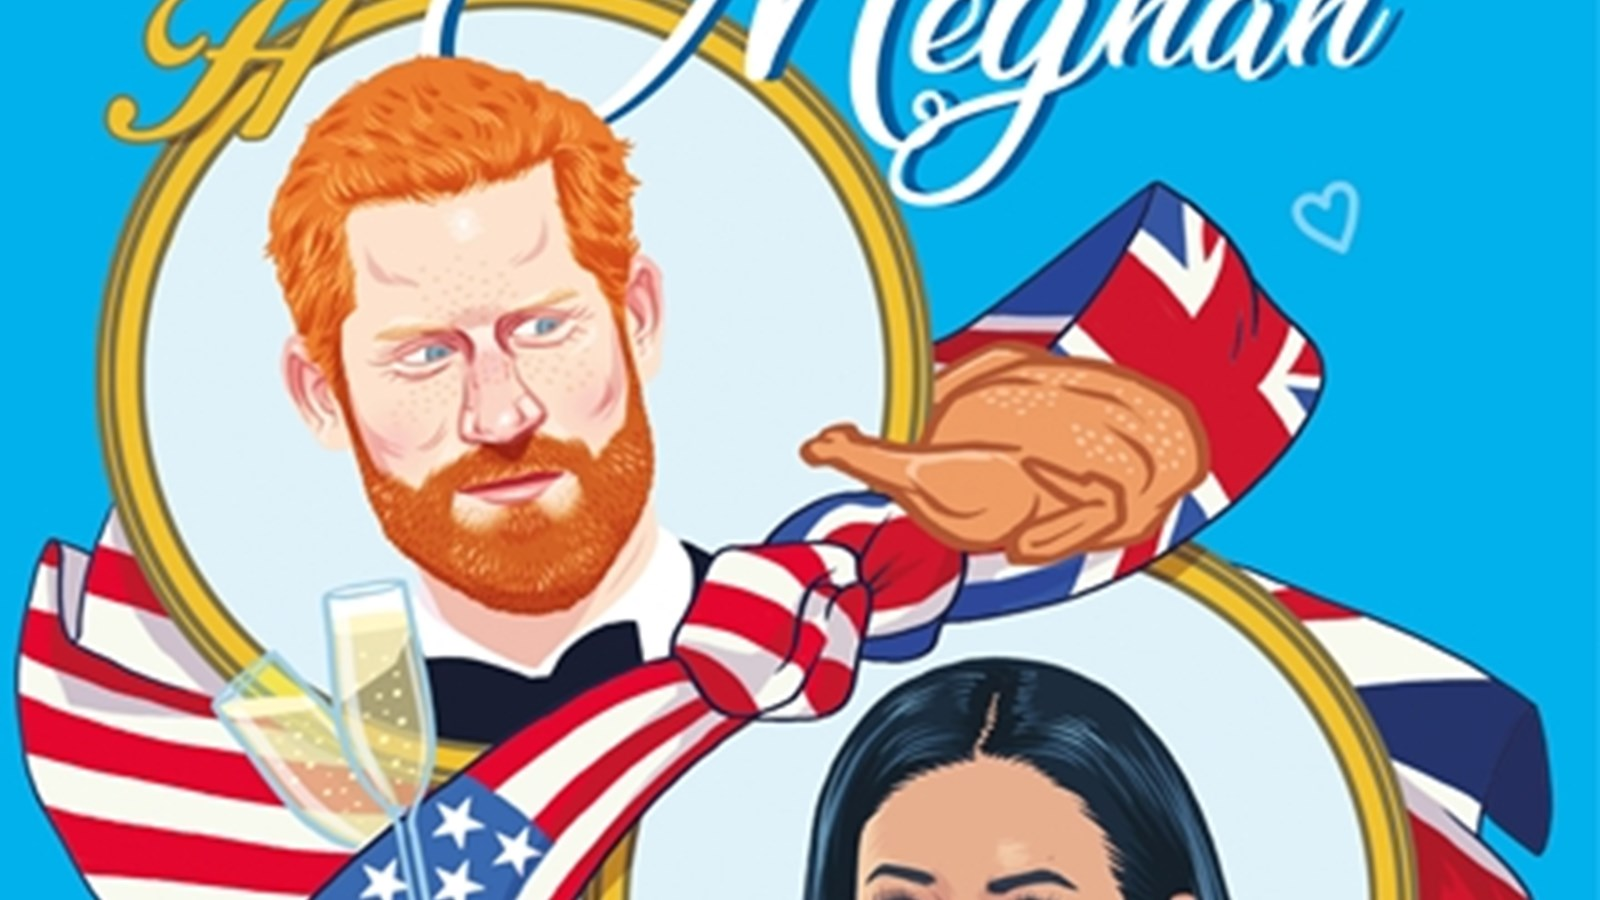 Harry and meghan clipart 9 » Clipart Station.